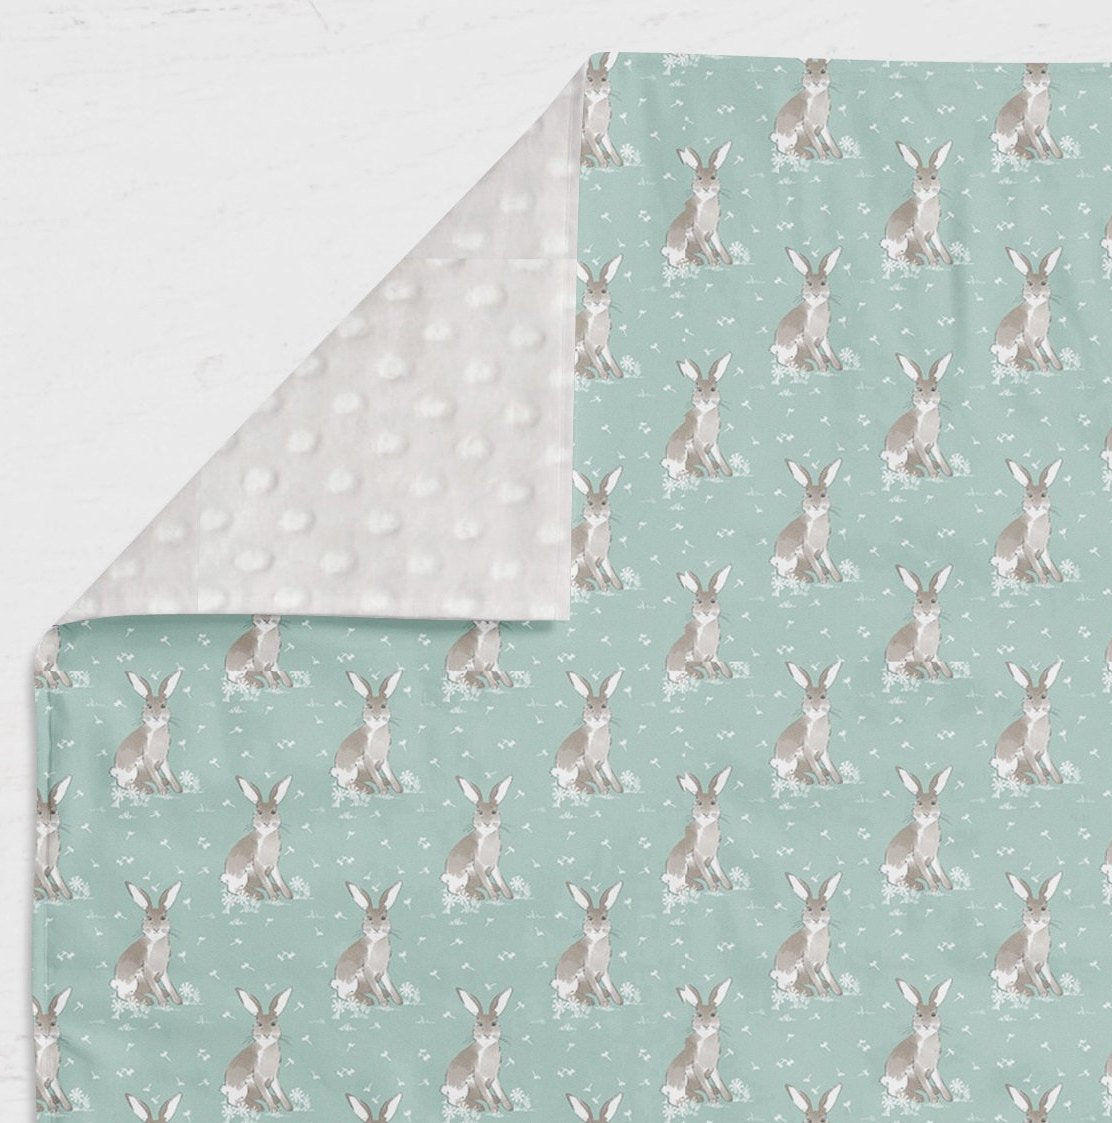 Woodland Nursery Set- Bunny Fitted Crib Sheet- Rabbit Blanket- Floral Crib Skirt- Rail Guard Cover- Crib Bumper- Changing Pad Cover Girls